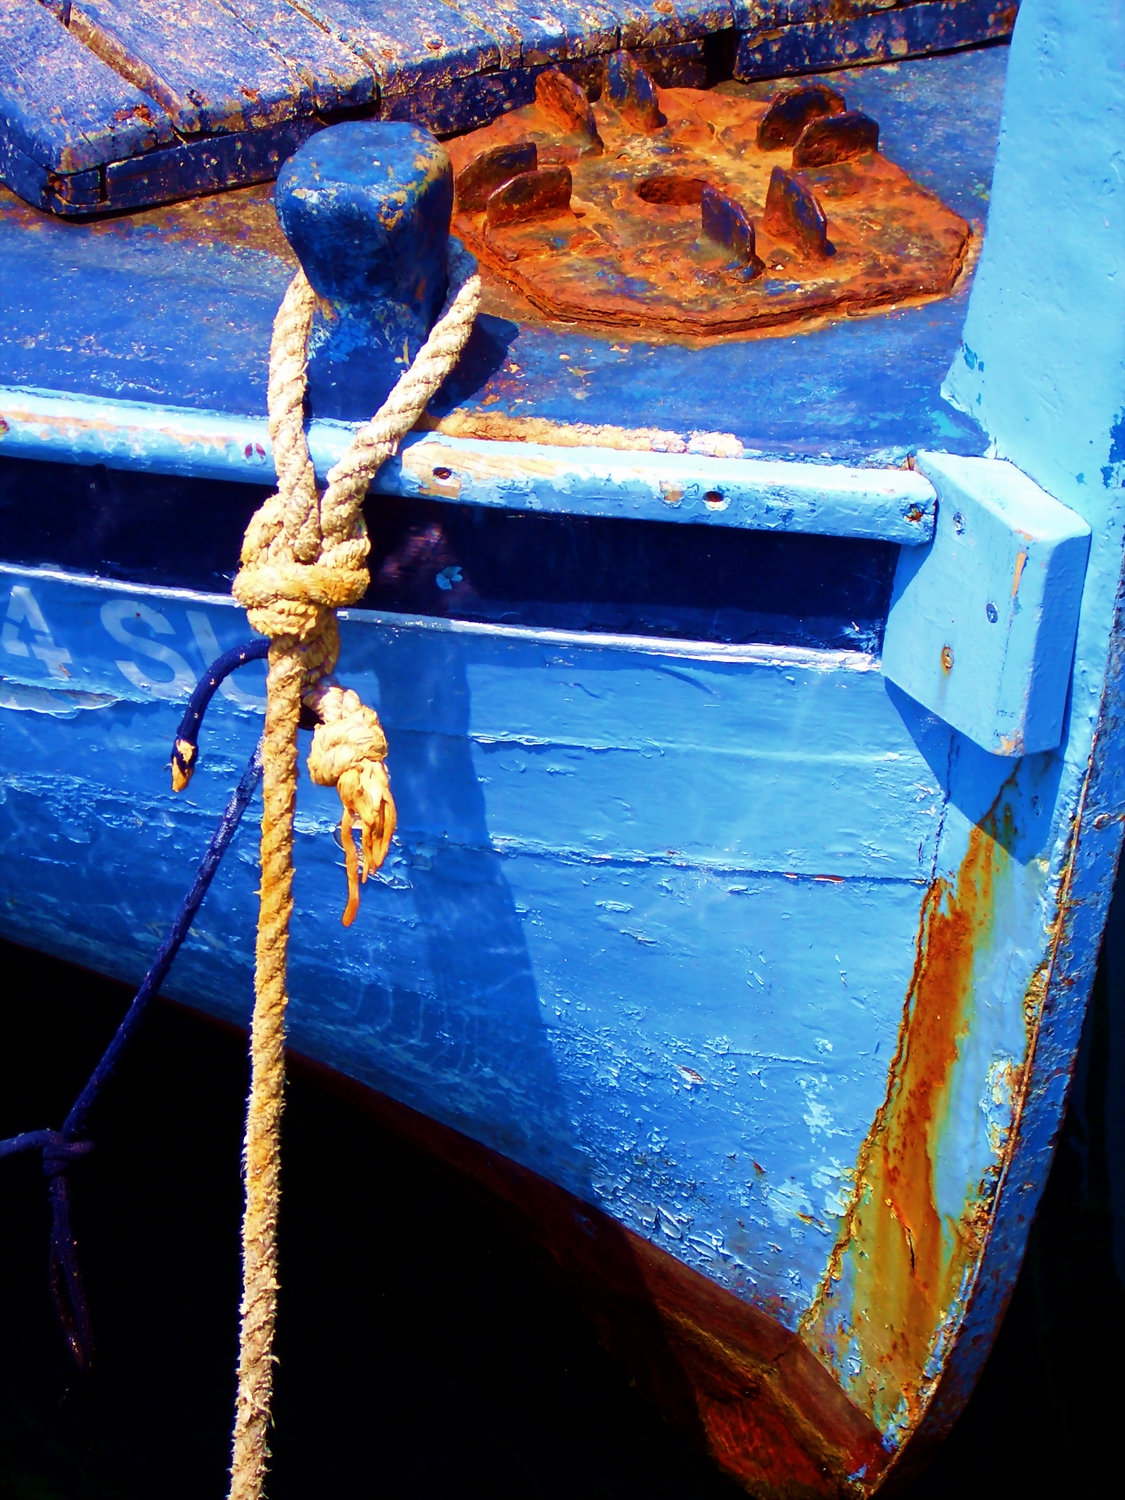 Detail of a boat